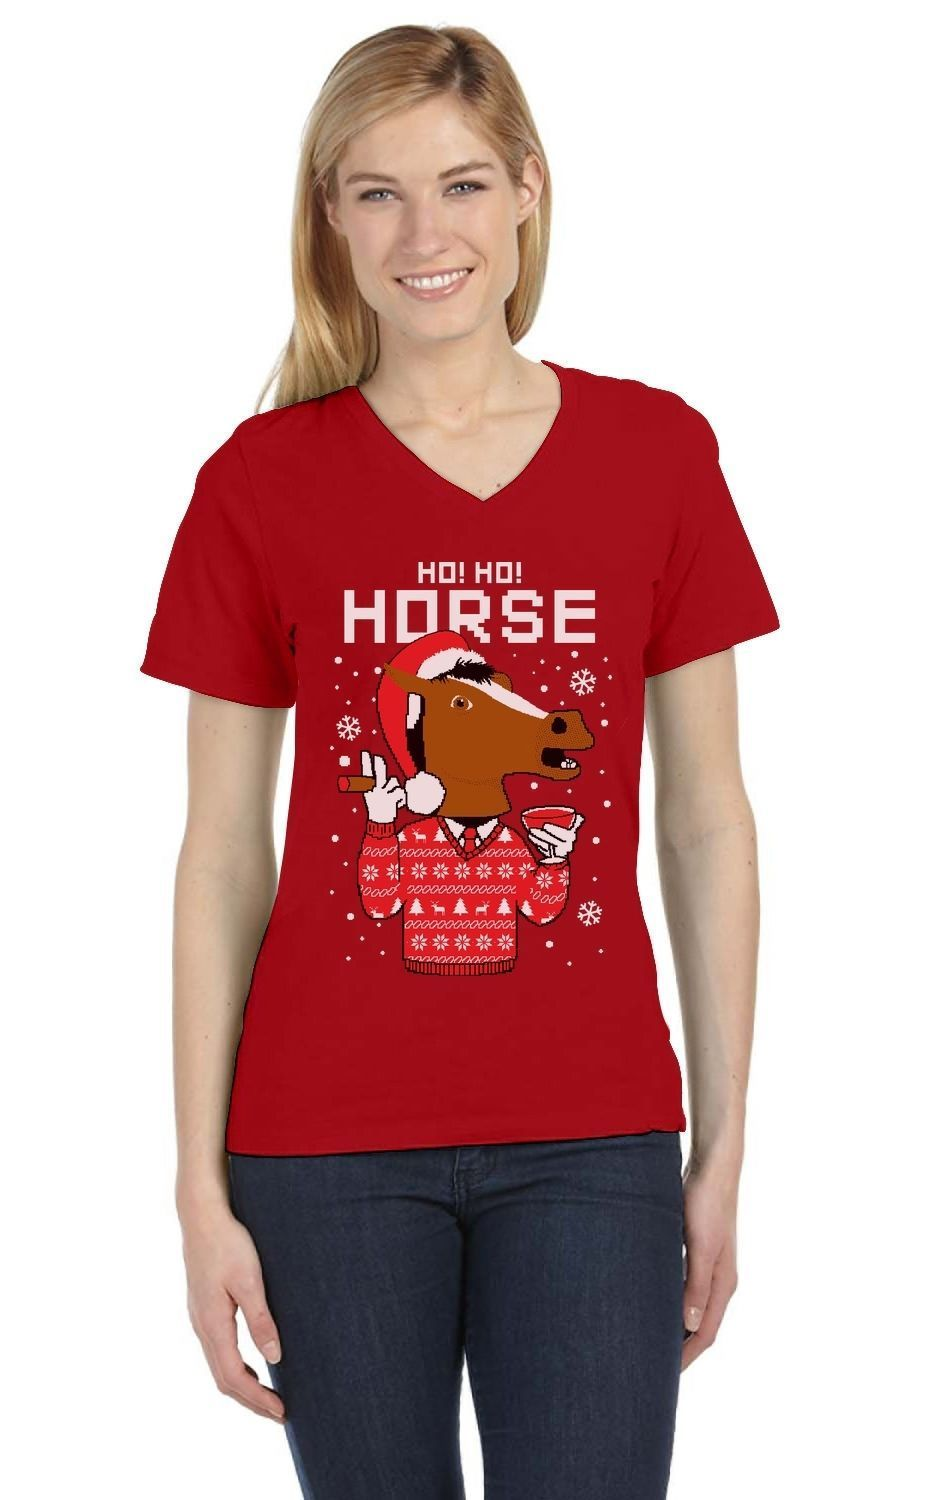 Kersttrui Matching.Details About Horse Mask Ugly Christmas Sweater Holiday V Neck Women